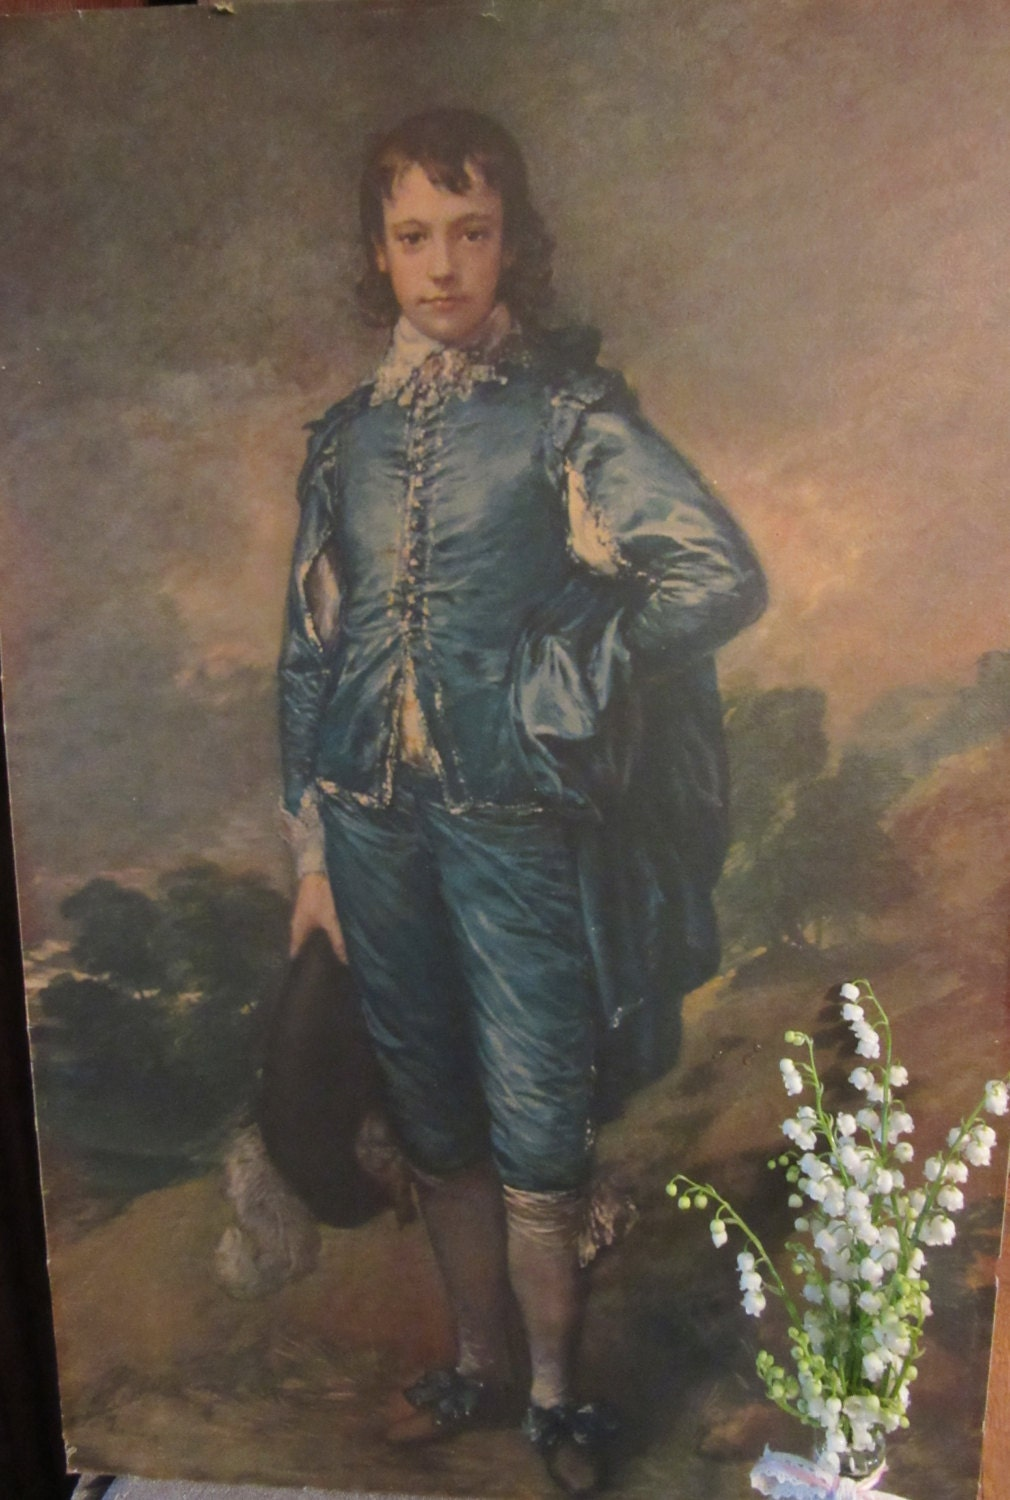 an analysis of the blue boy a painting by thomas gainsborough This is an antique miniature portrait painting which is a copy of a painting by thomas gainsborough known as the boy in blue it is unsigned oil painting signed l thomas little boy blue 2 1/2 x 3 5/8.